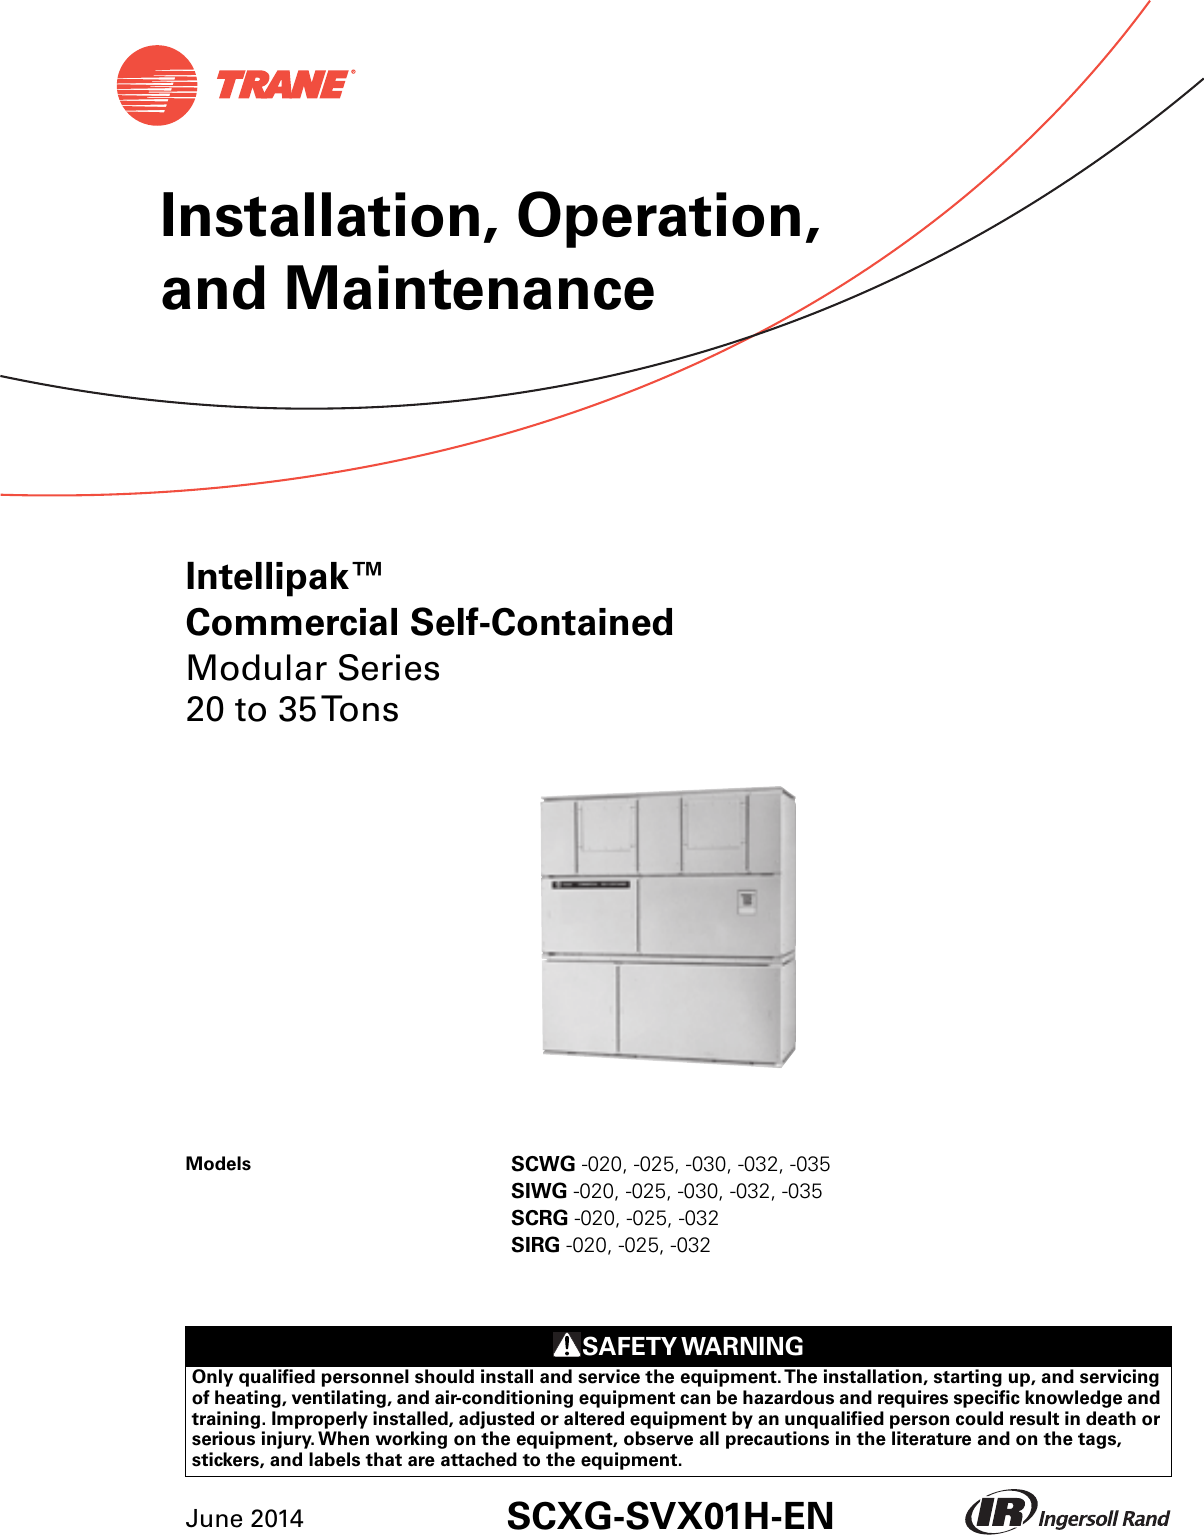 Trane Hard Start Kit Wiring Diagram Modular 20 To 35 Tons Installation And Maintenance Manual Scxg Svx01h En 06 2014